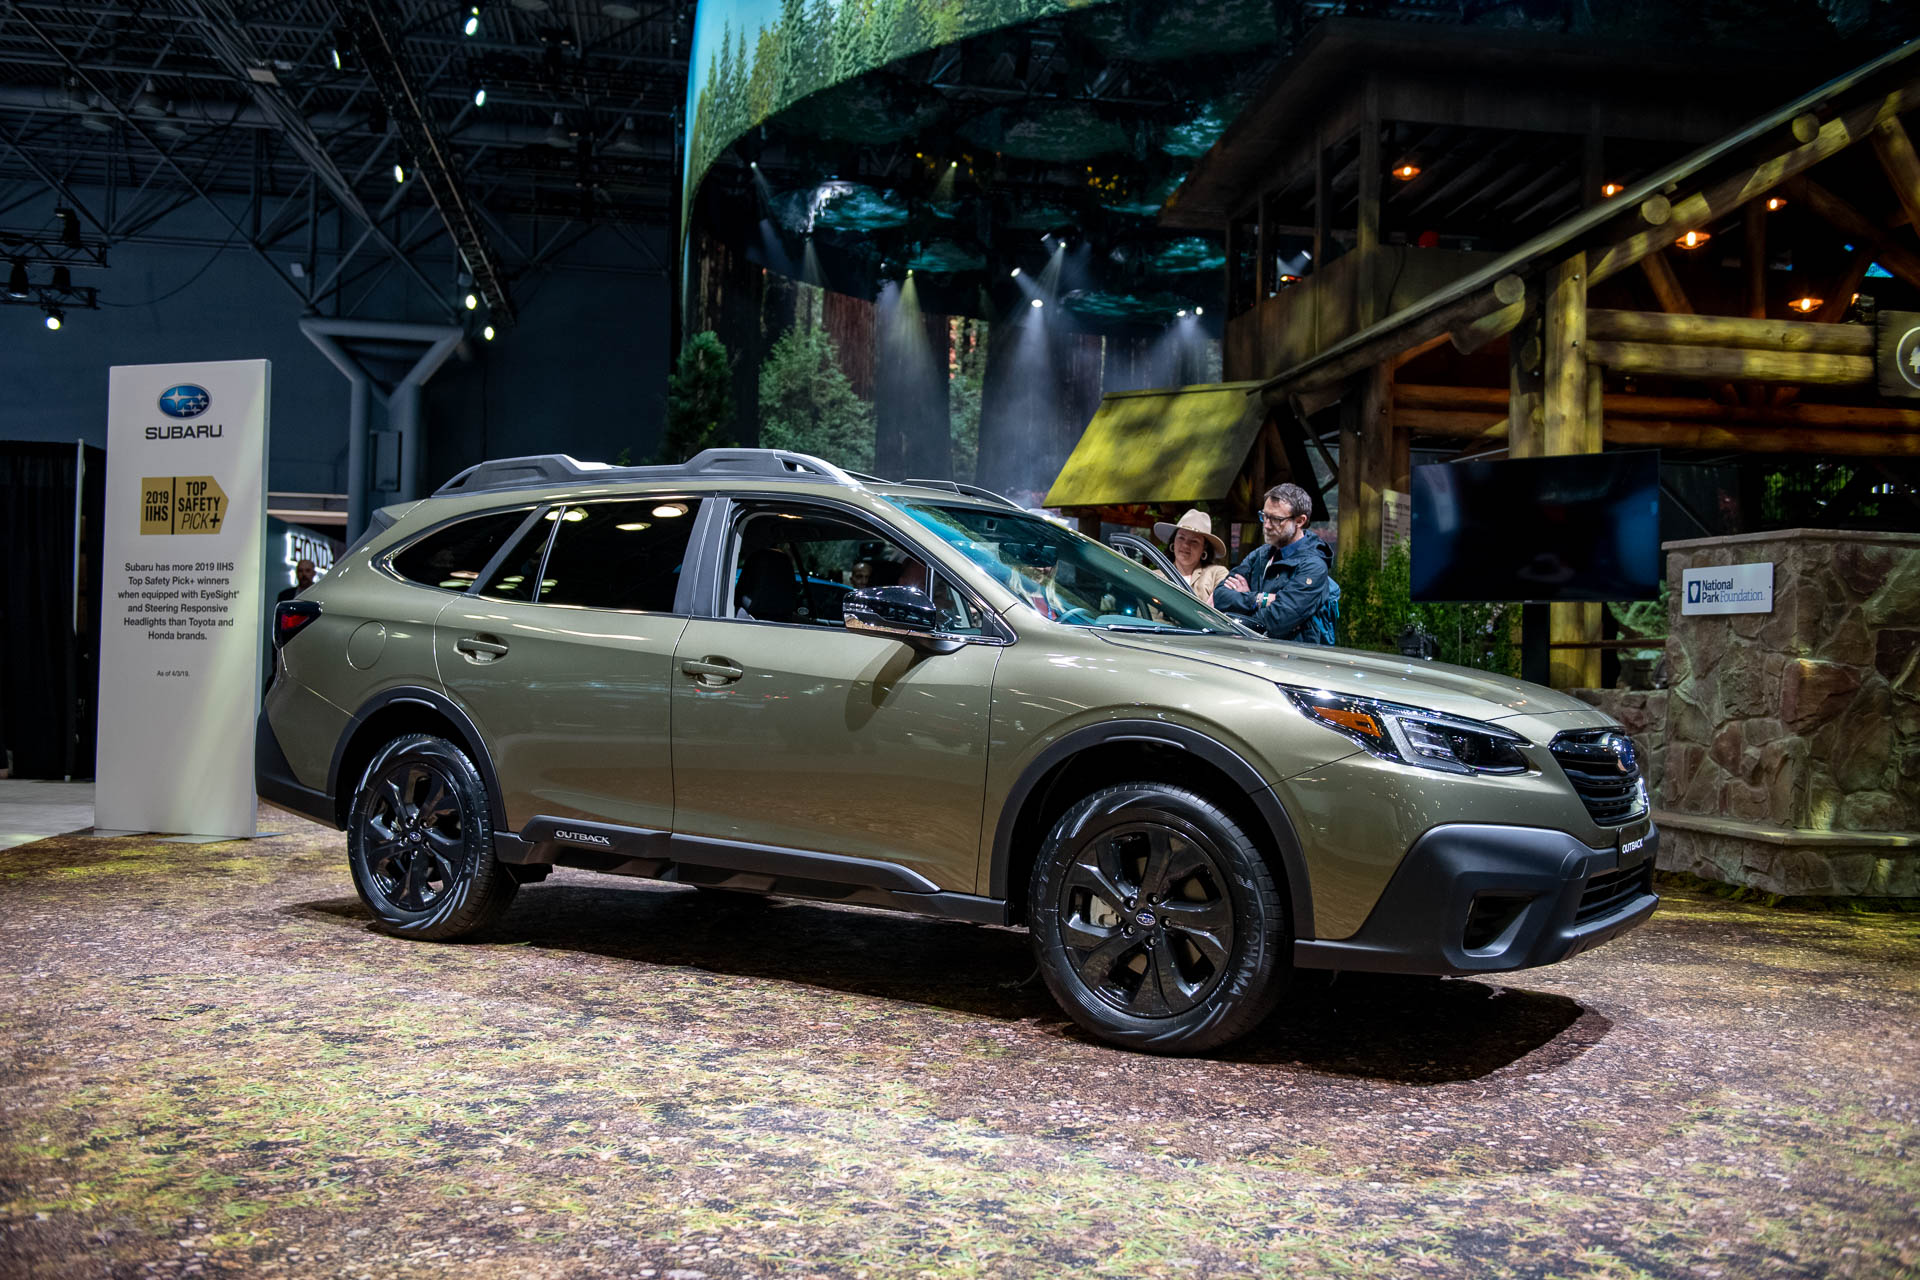 2020 Subaru Outback Unveiled Crossover Suv Laces Up With More Tech